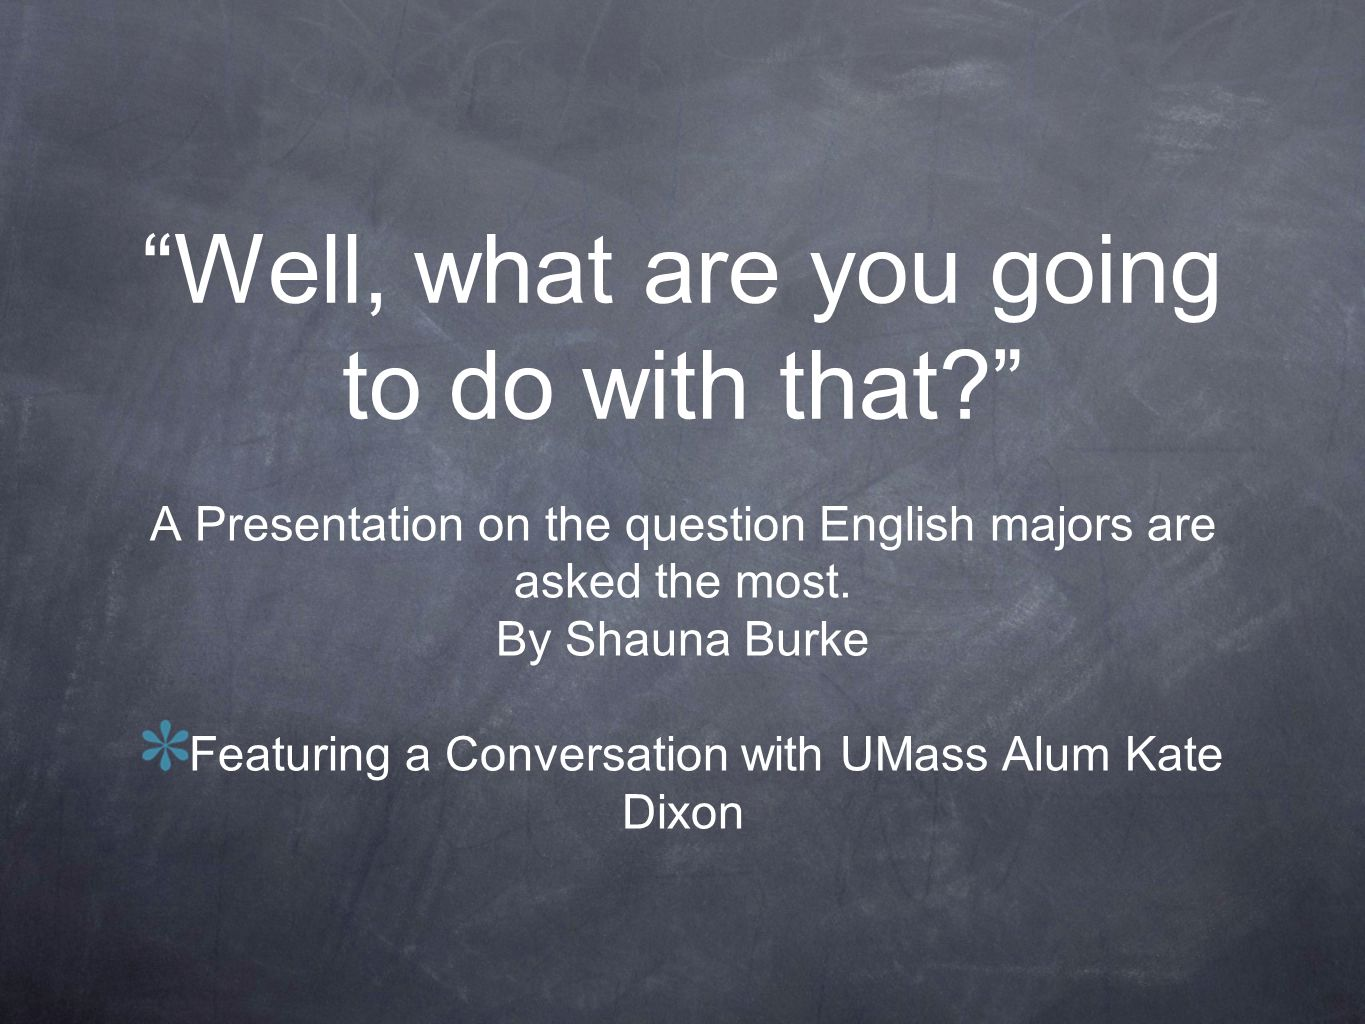 Well, what are you going to do with that? A Presentation on the question English majors are asked the most. By Shauna Burke Featuring a Conversation w